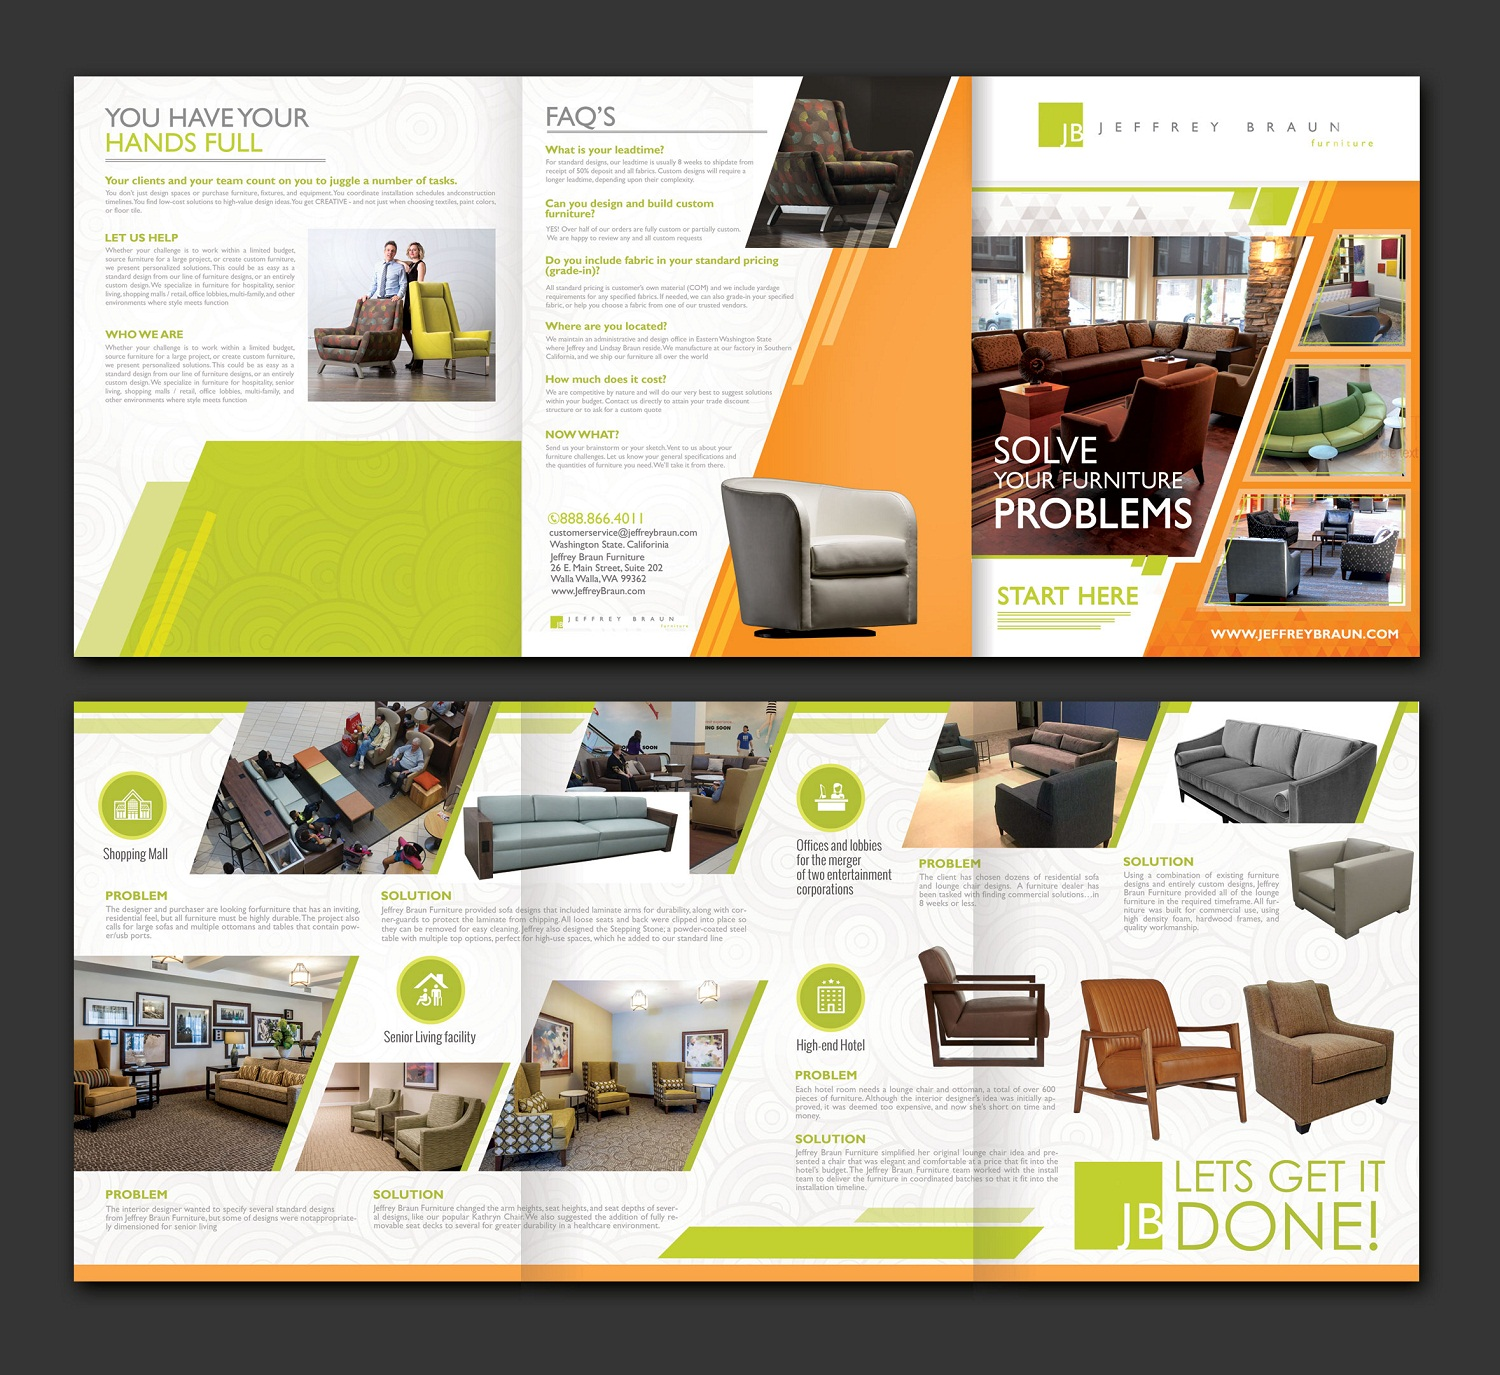 Brochure Design By Designguru For Jeffrey Braun Furniture 12076246